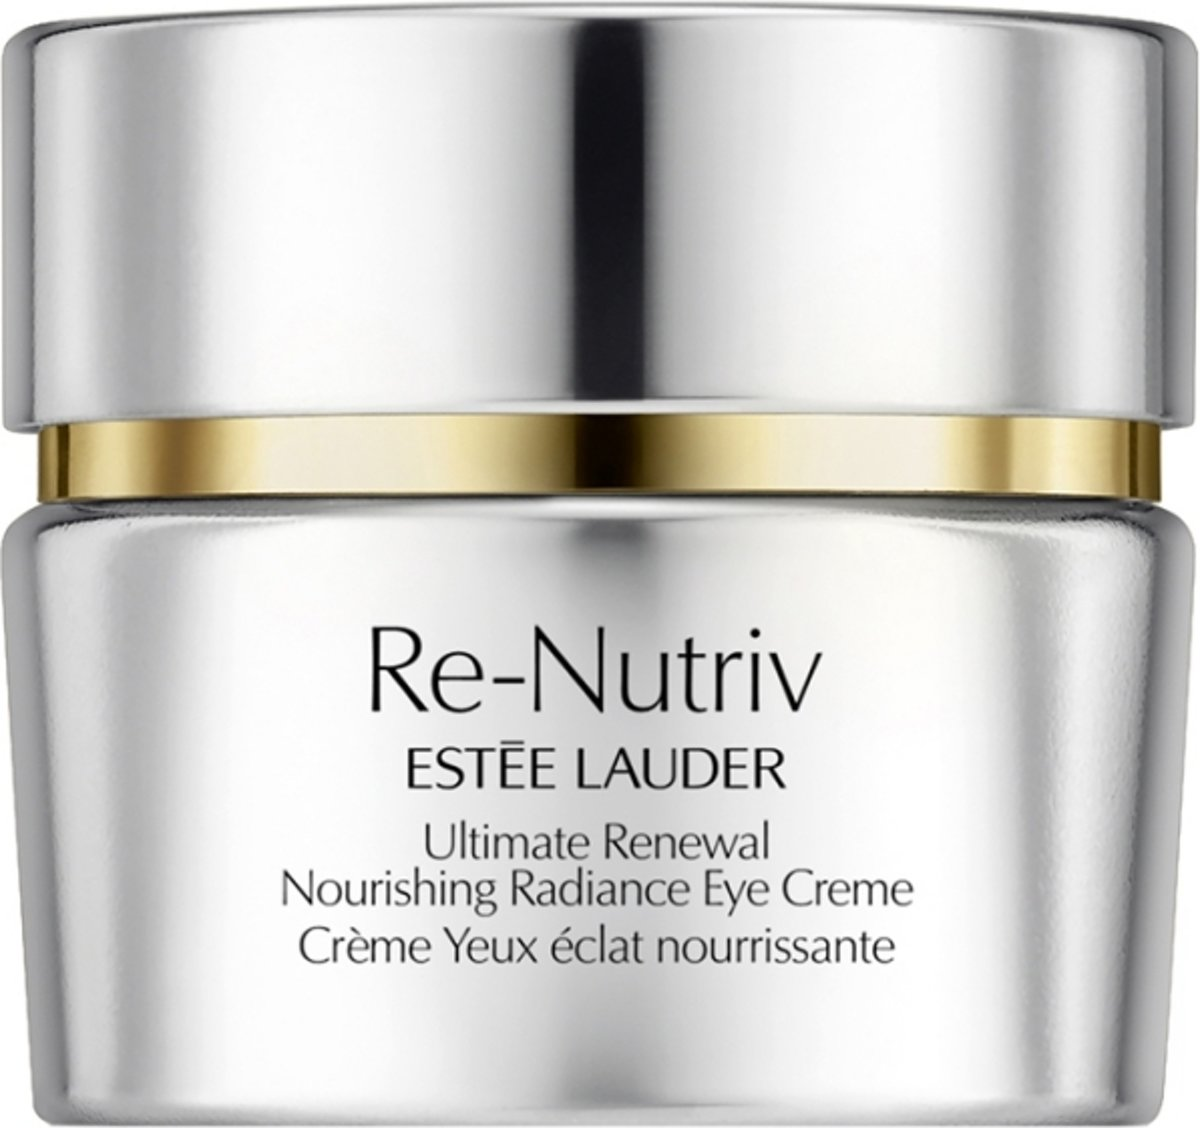 Estée Lauder Re-Nutriv Ultimate Renewal Nourishing Radiance Eye Cream Oogcrème 15 ml